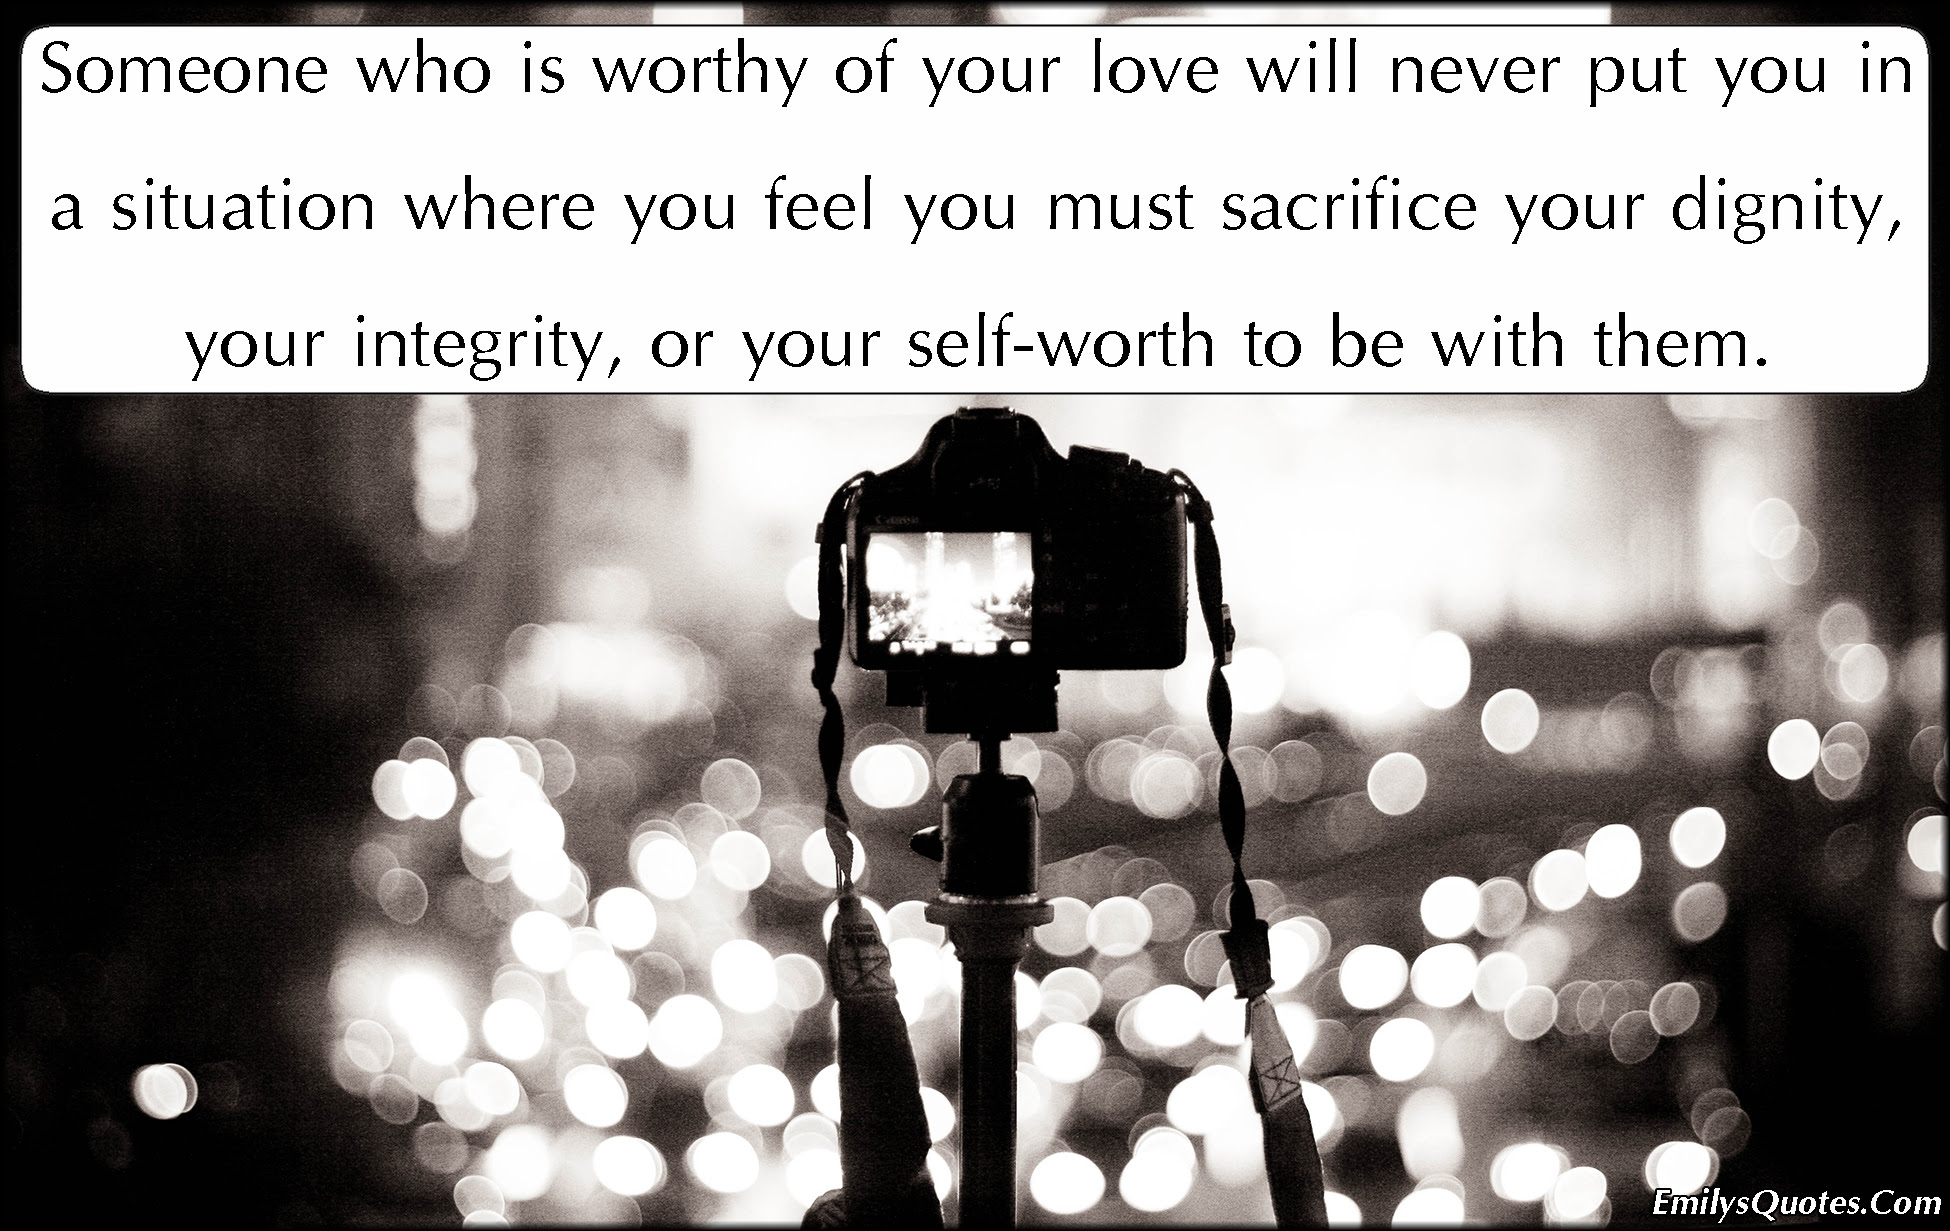 Someone Who Is Worthy Of Your Love Will Never Put You In A Situation